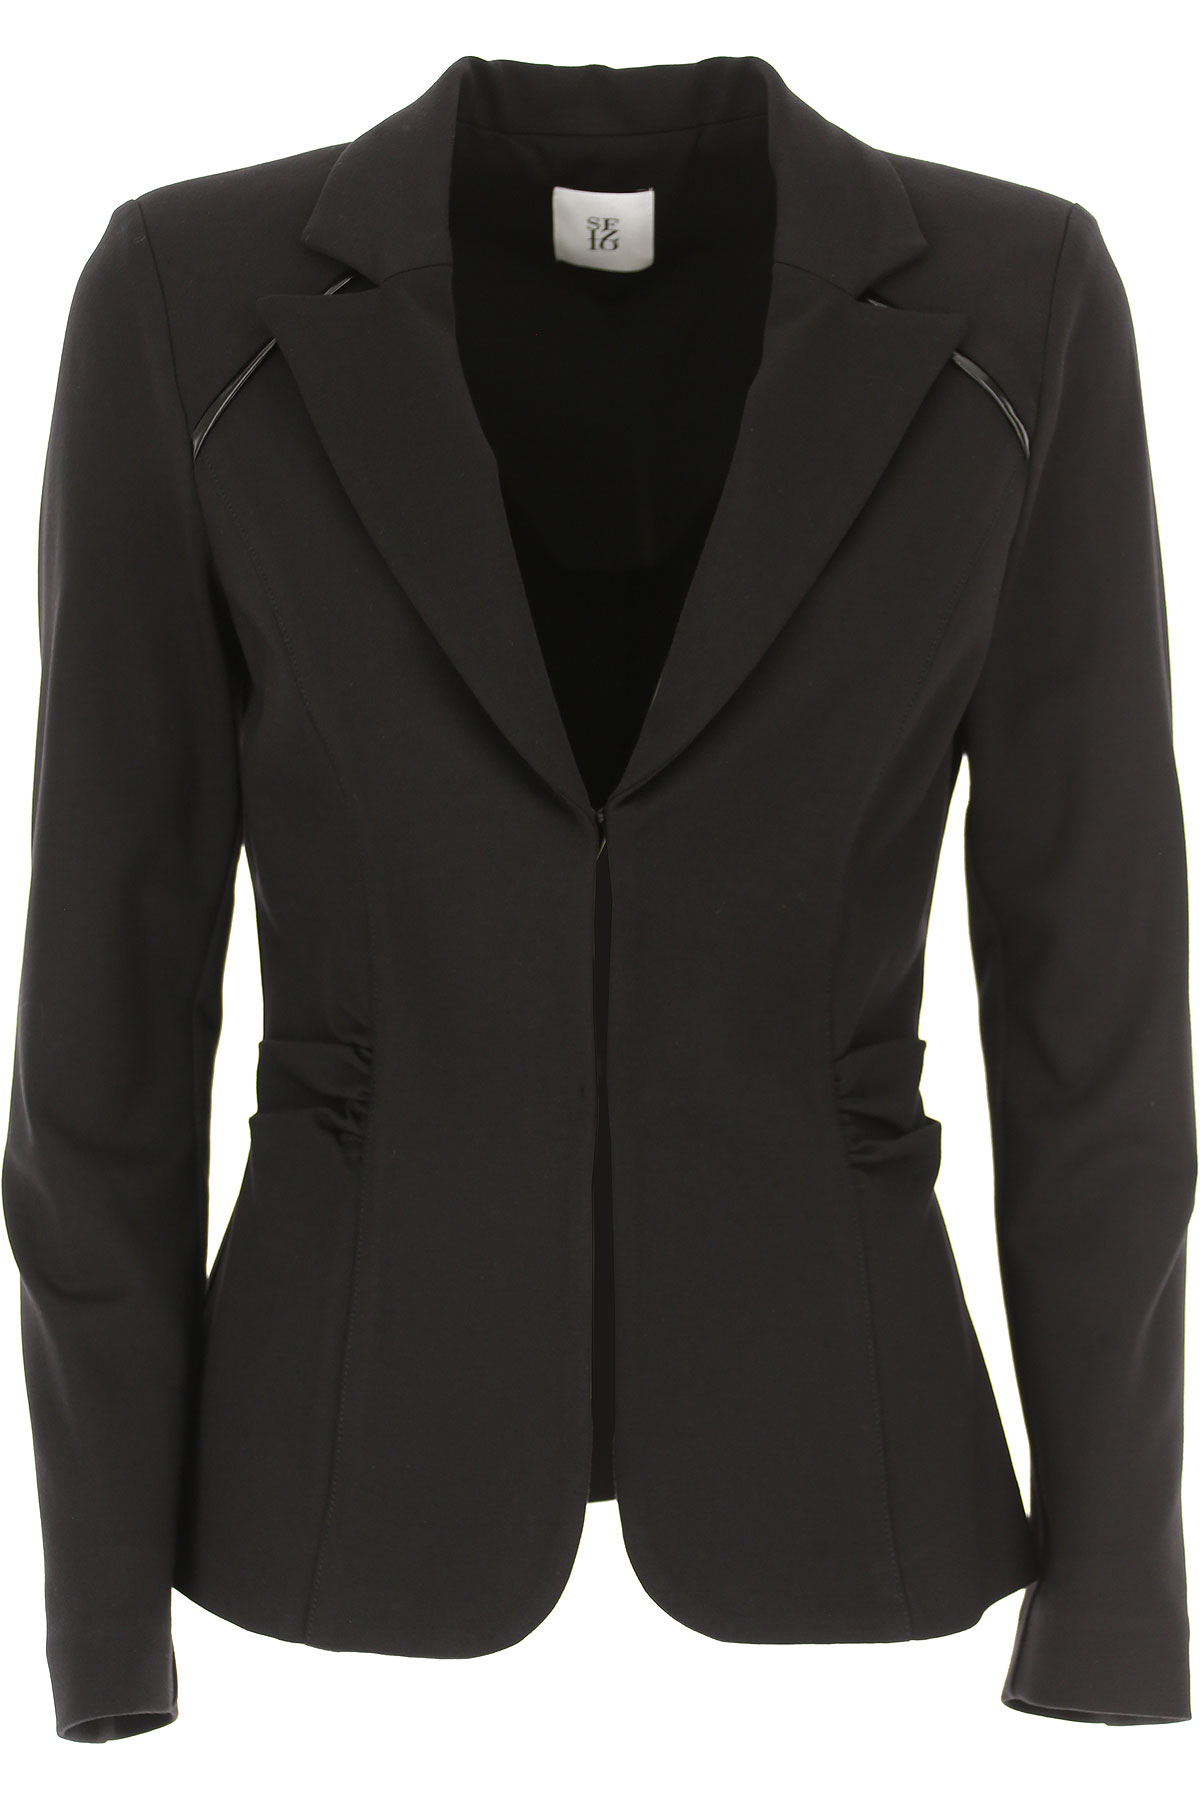 Image of Sfizio Blazer for Women, Black, Viscose, 2017, 10 6 8